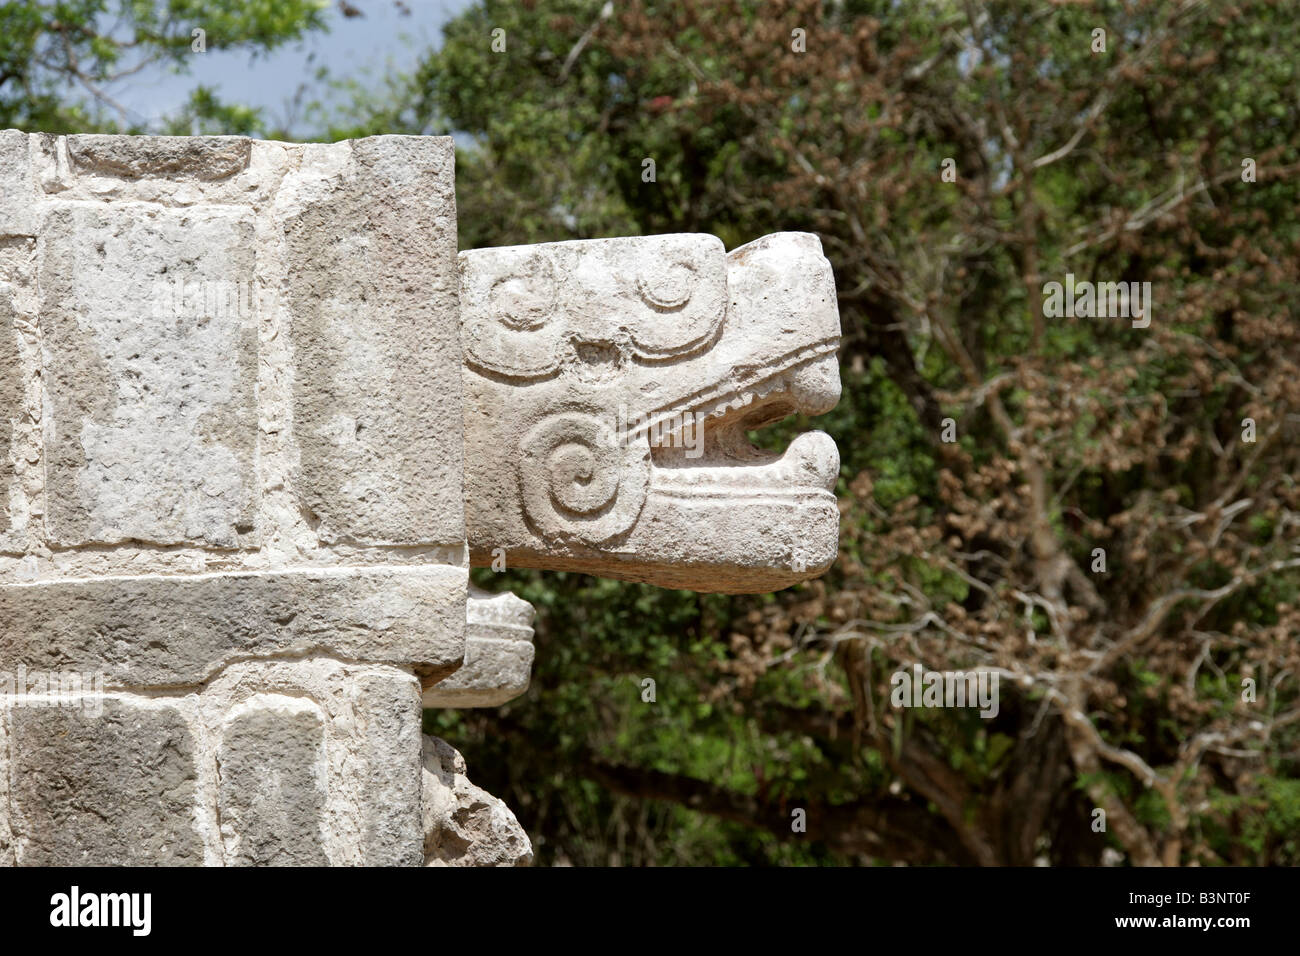 Detail of Serpent Head Carving on the Platform of the Eagles and Jaguars, Chichen Itza Archaeological Site, Yucatan, Stock Photo